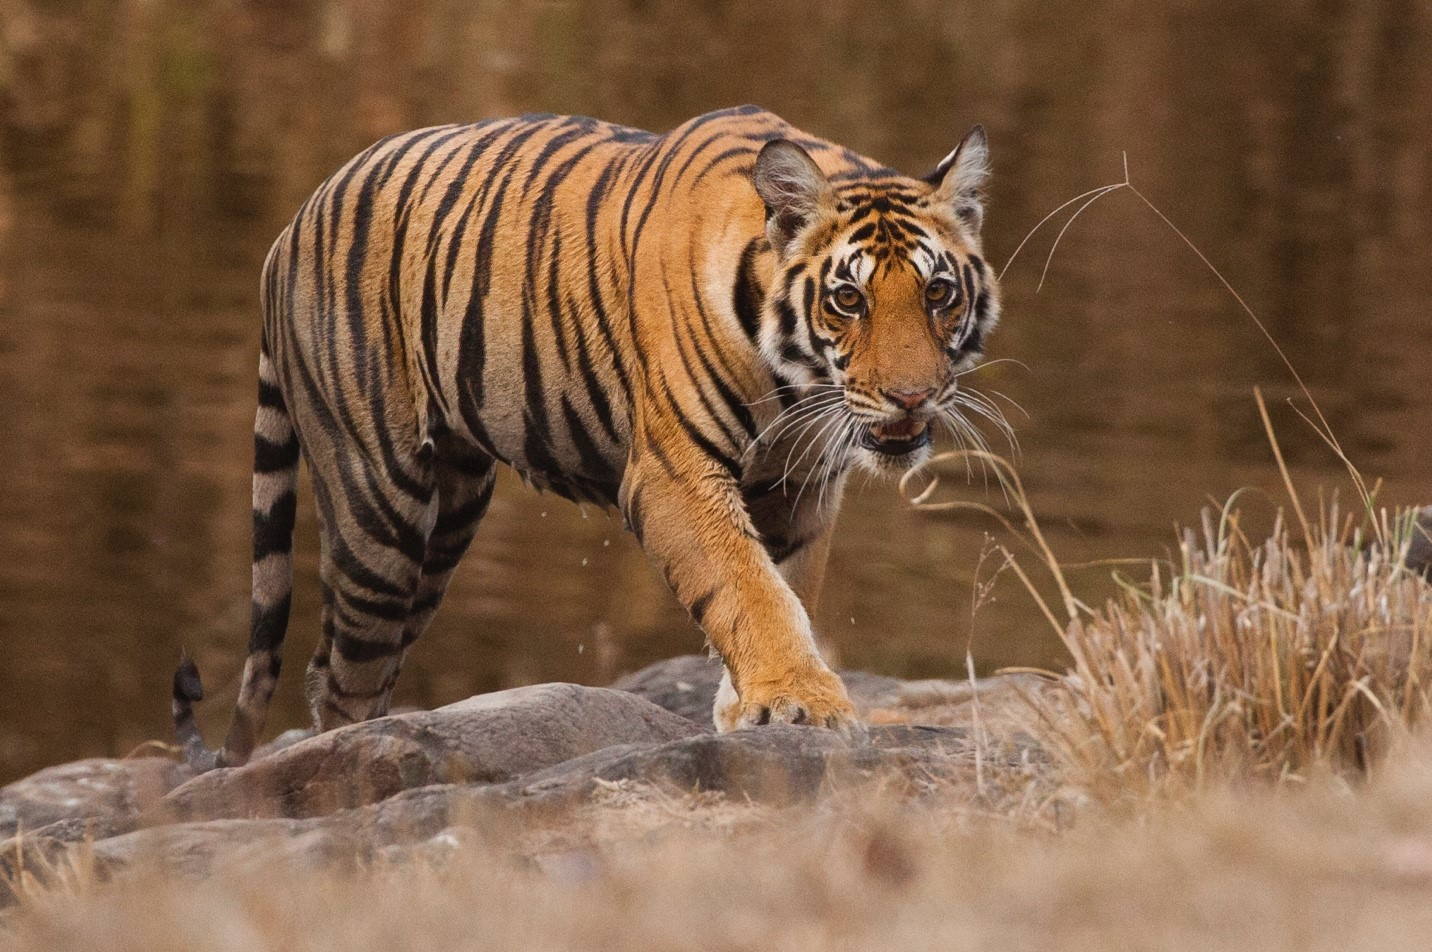 a large tiger walks slowly out of a pond